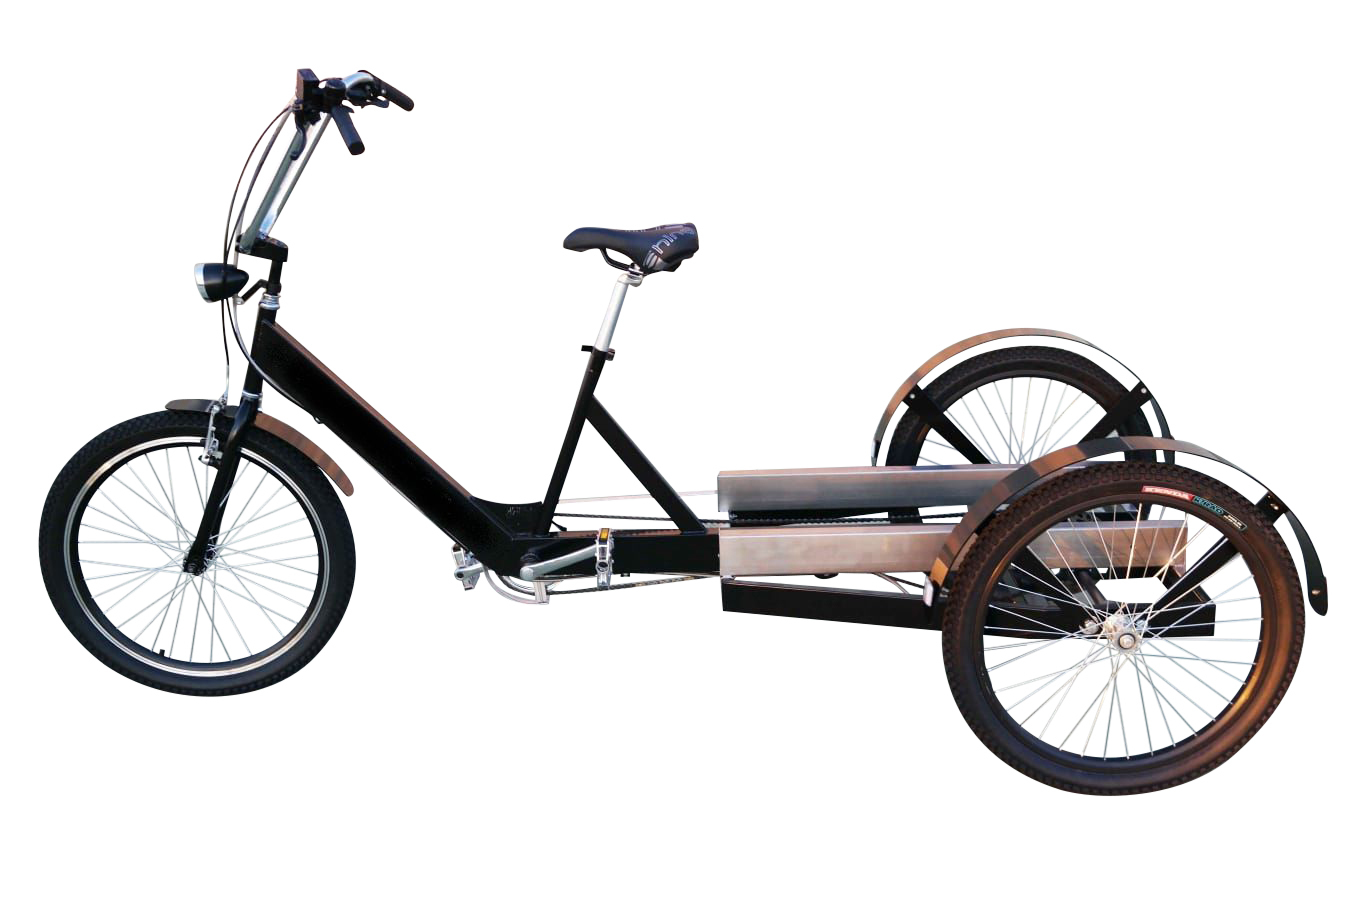 Triciclo_Posteriore_con_differenziale_cargo_bike02_nero